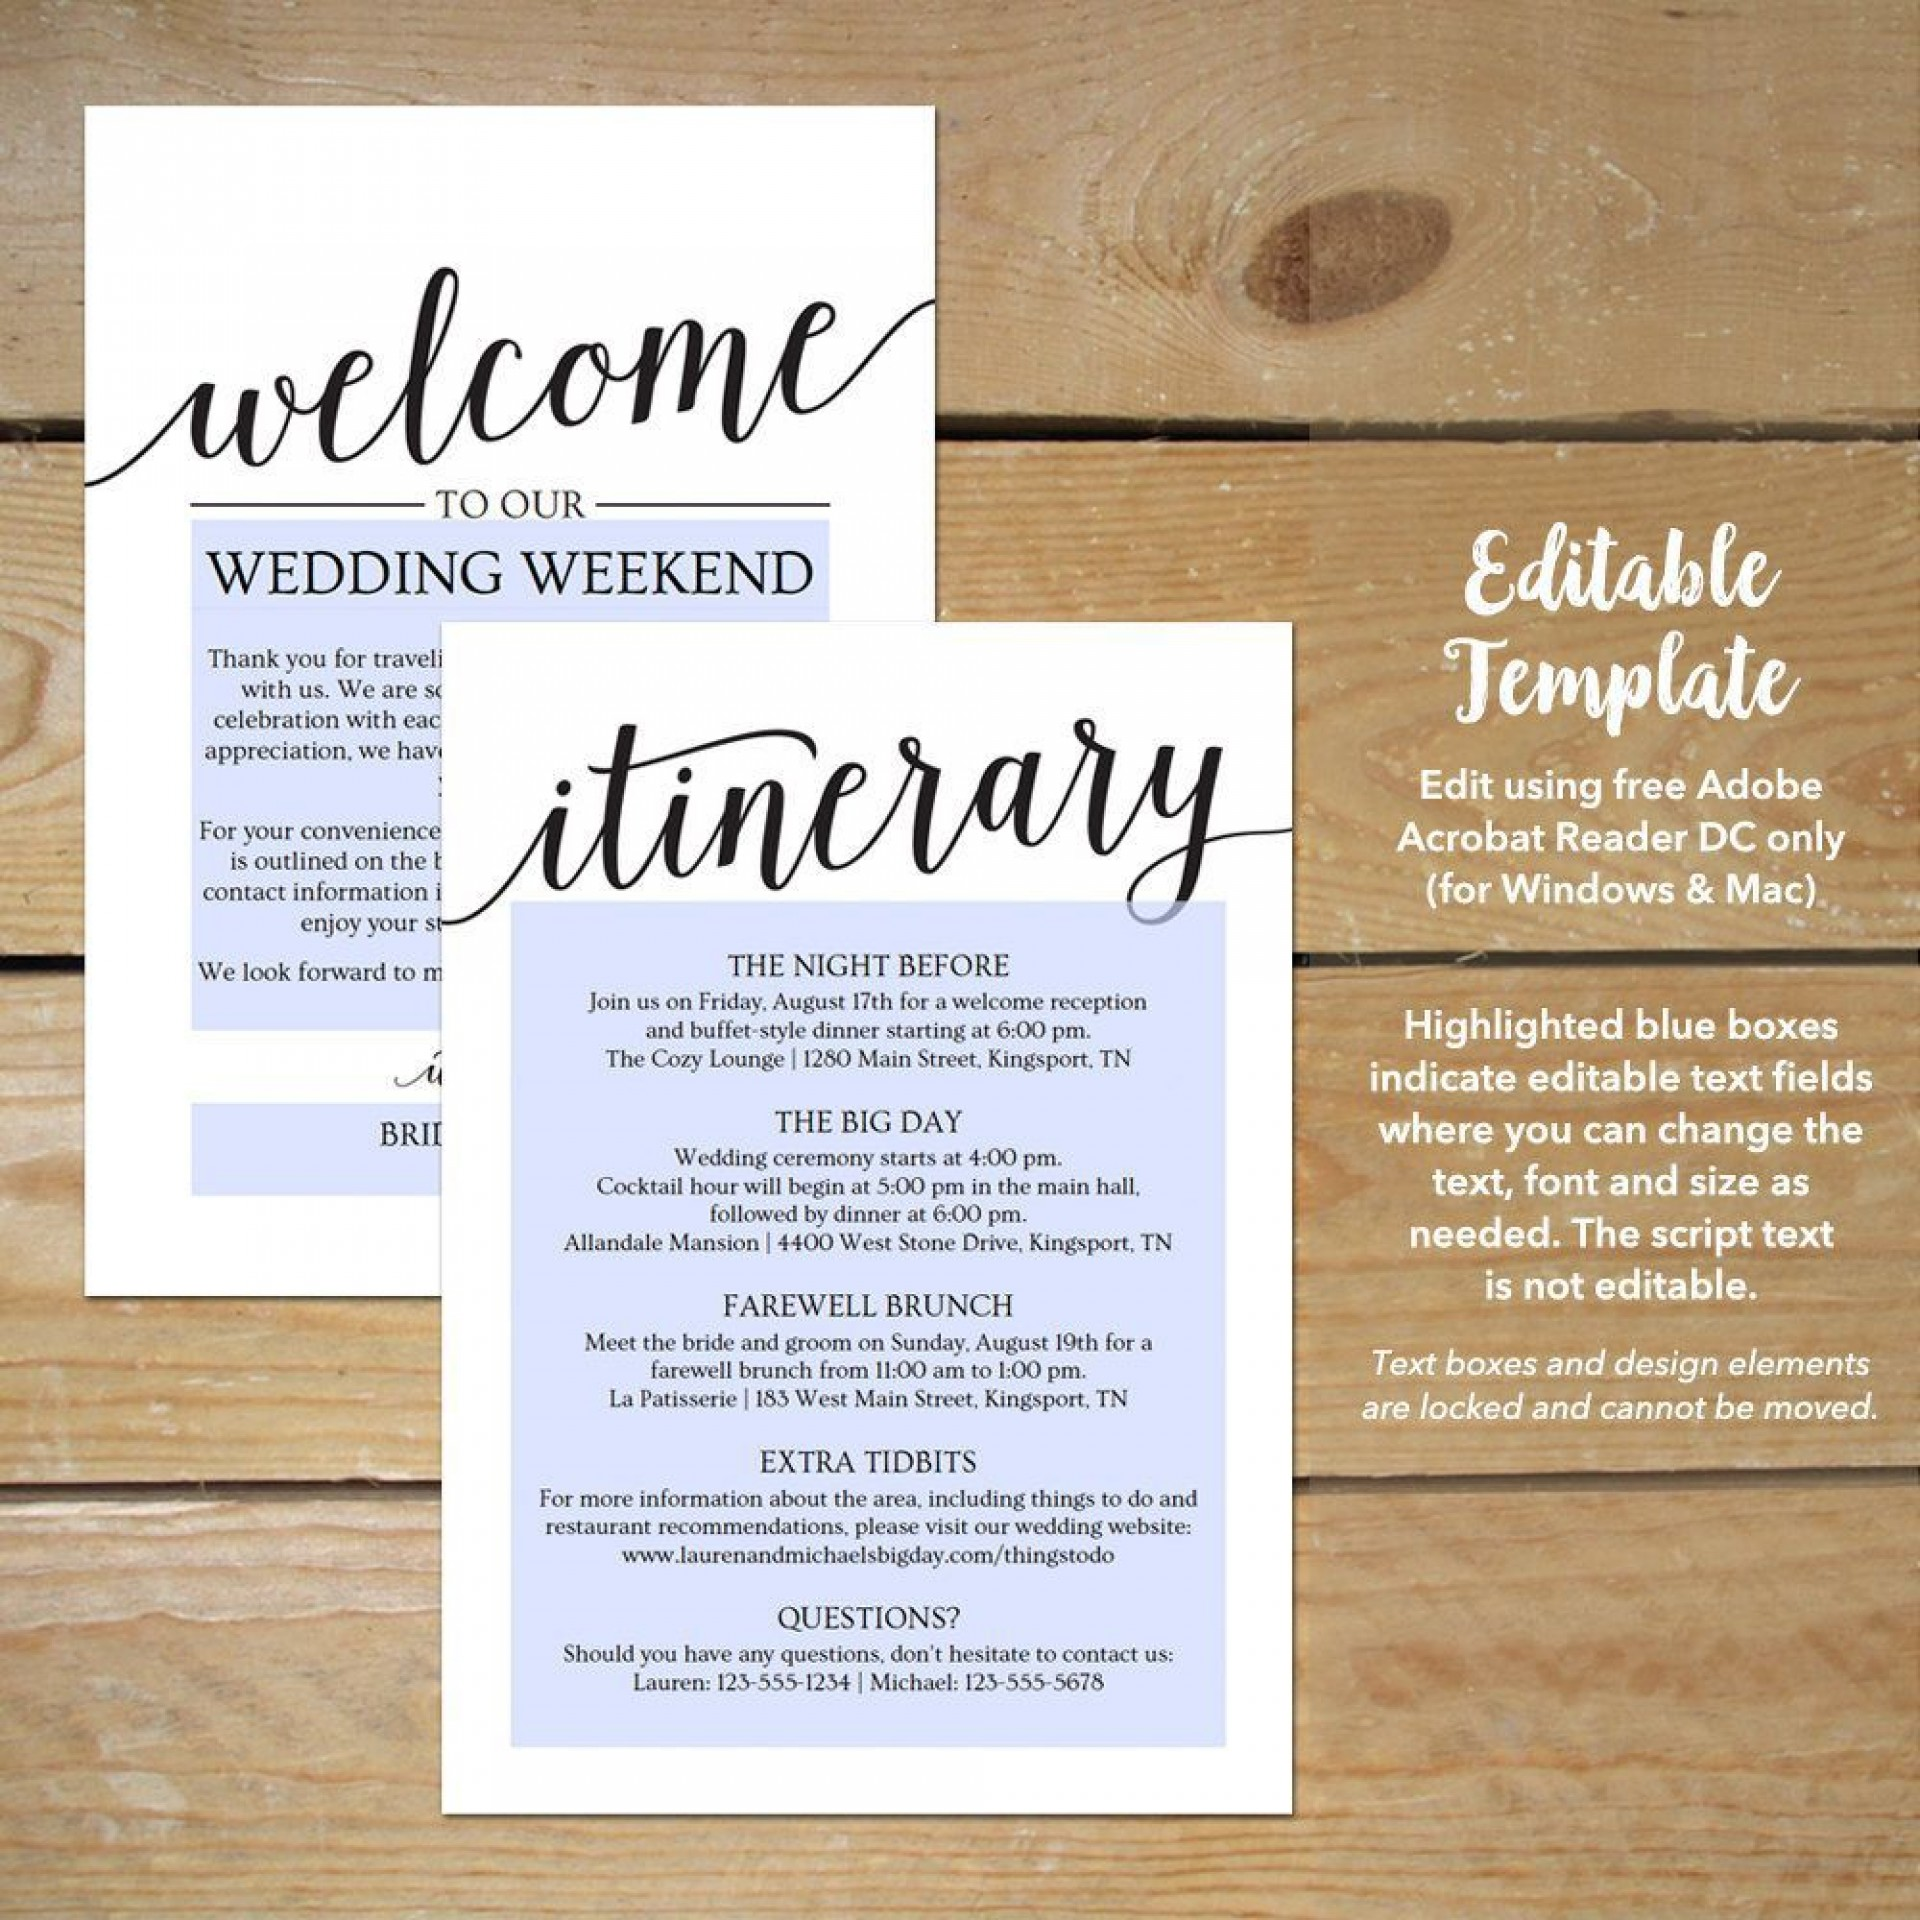 002 Unbelievable Destination Wedding Itinerary Template Sample  Welcome Letter And Free1920